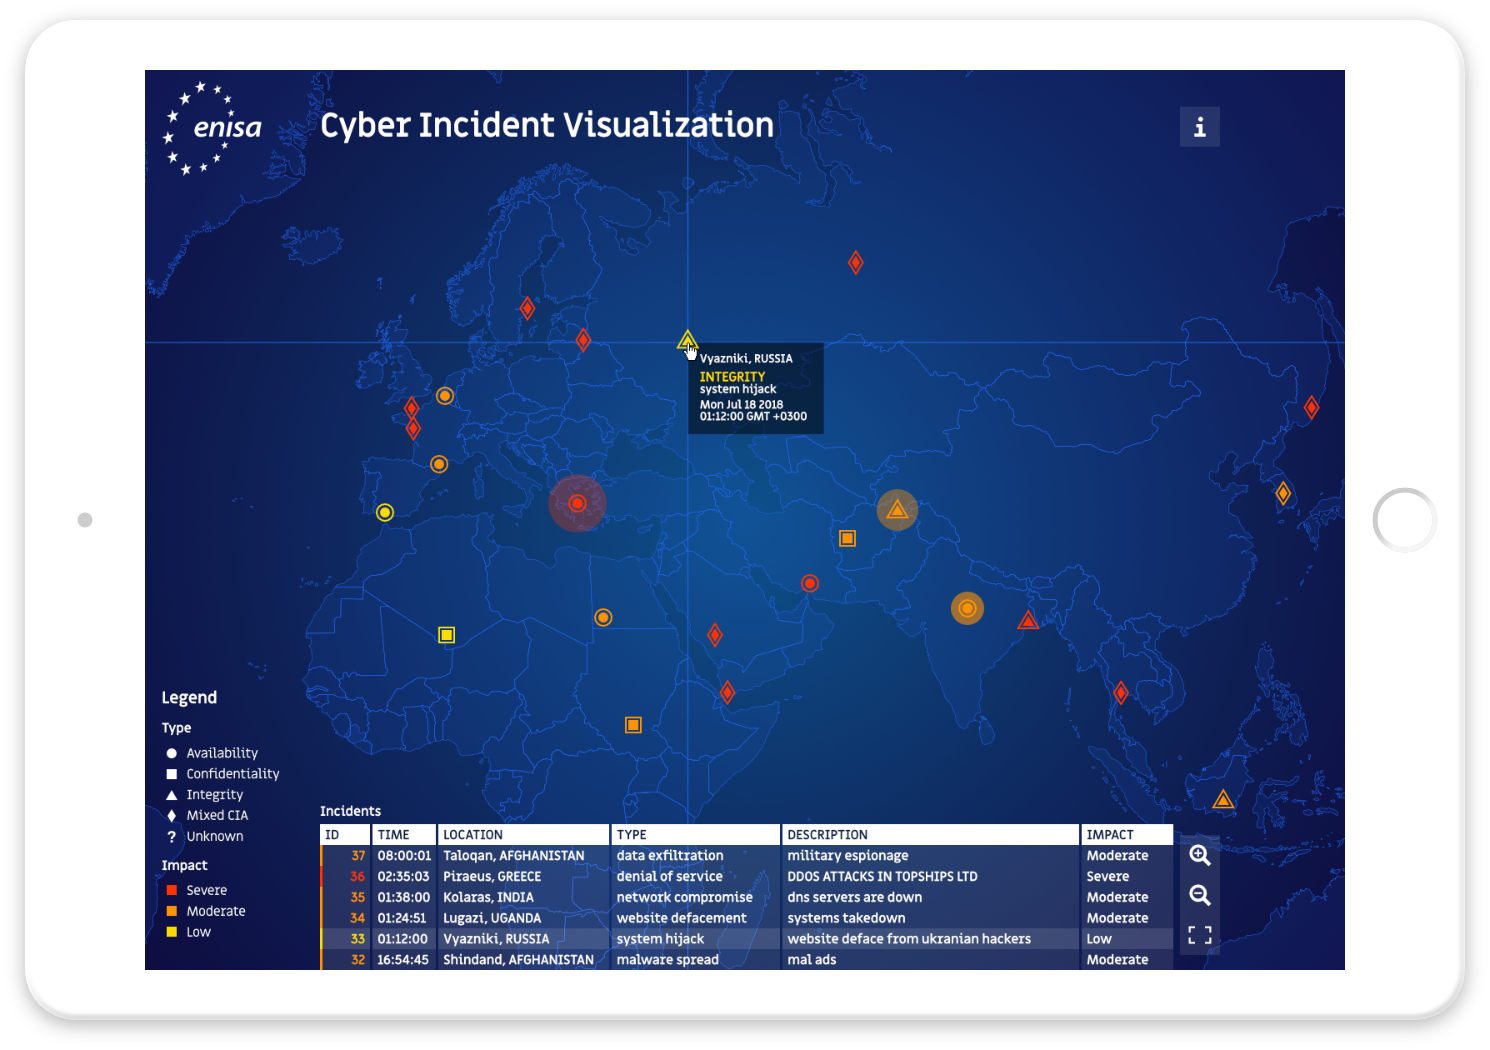 Cyber incident visualization